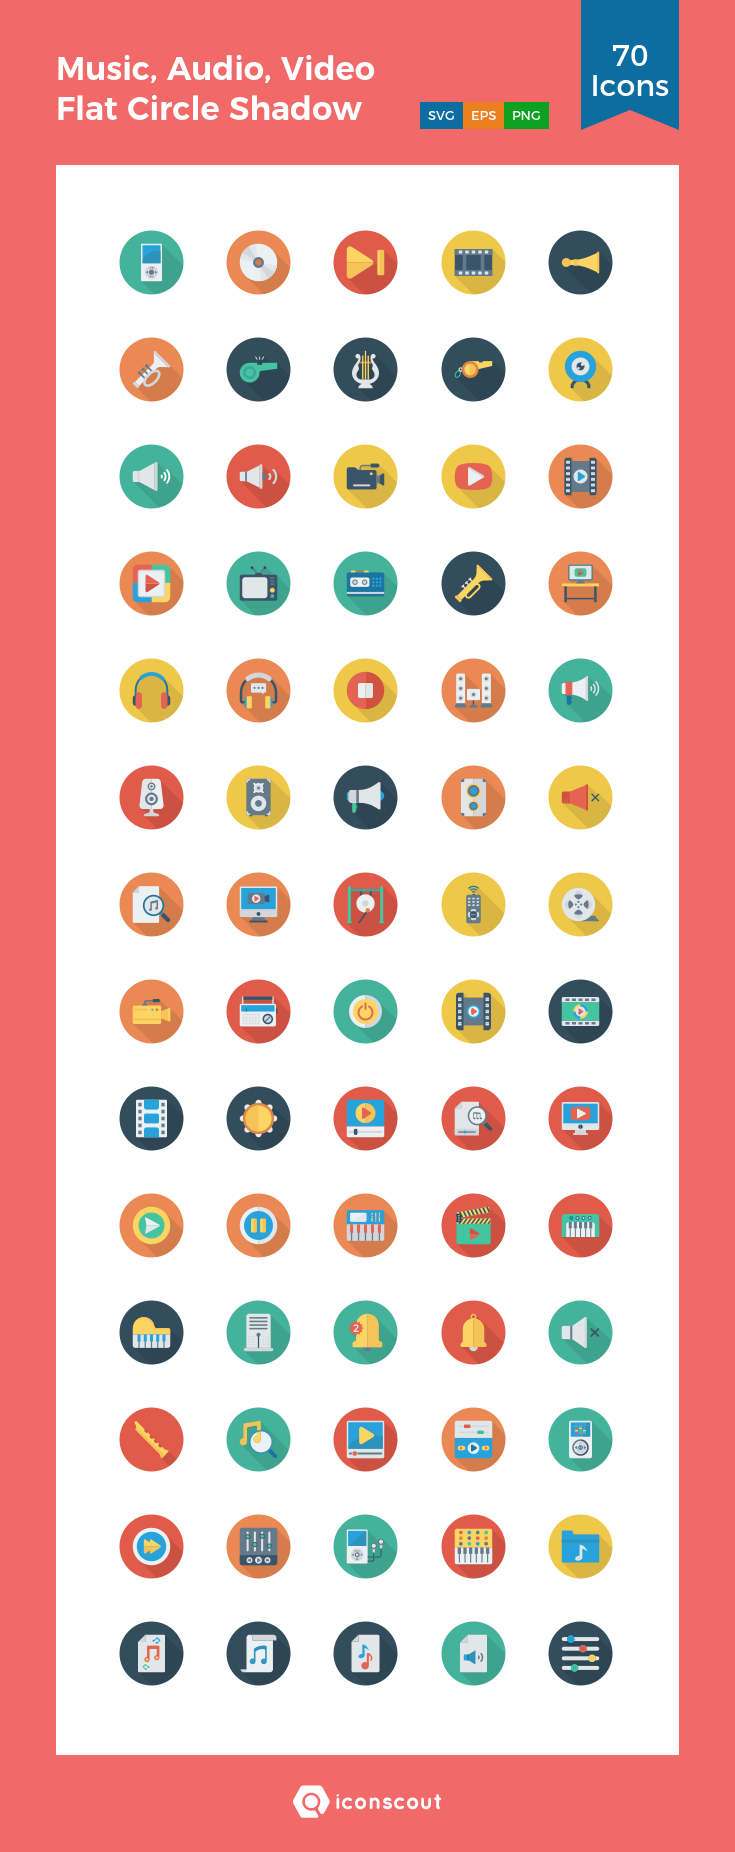 Download Music Audio Video Flat Circle Shadow Vol 1 Icon Pack Available In Svg Png Eps Ai Icon Fonts Icon Pack Flat Icon Icon